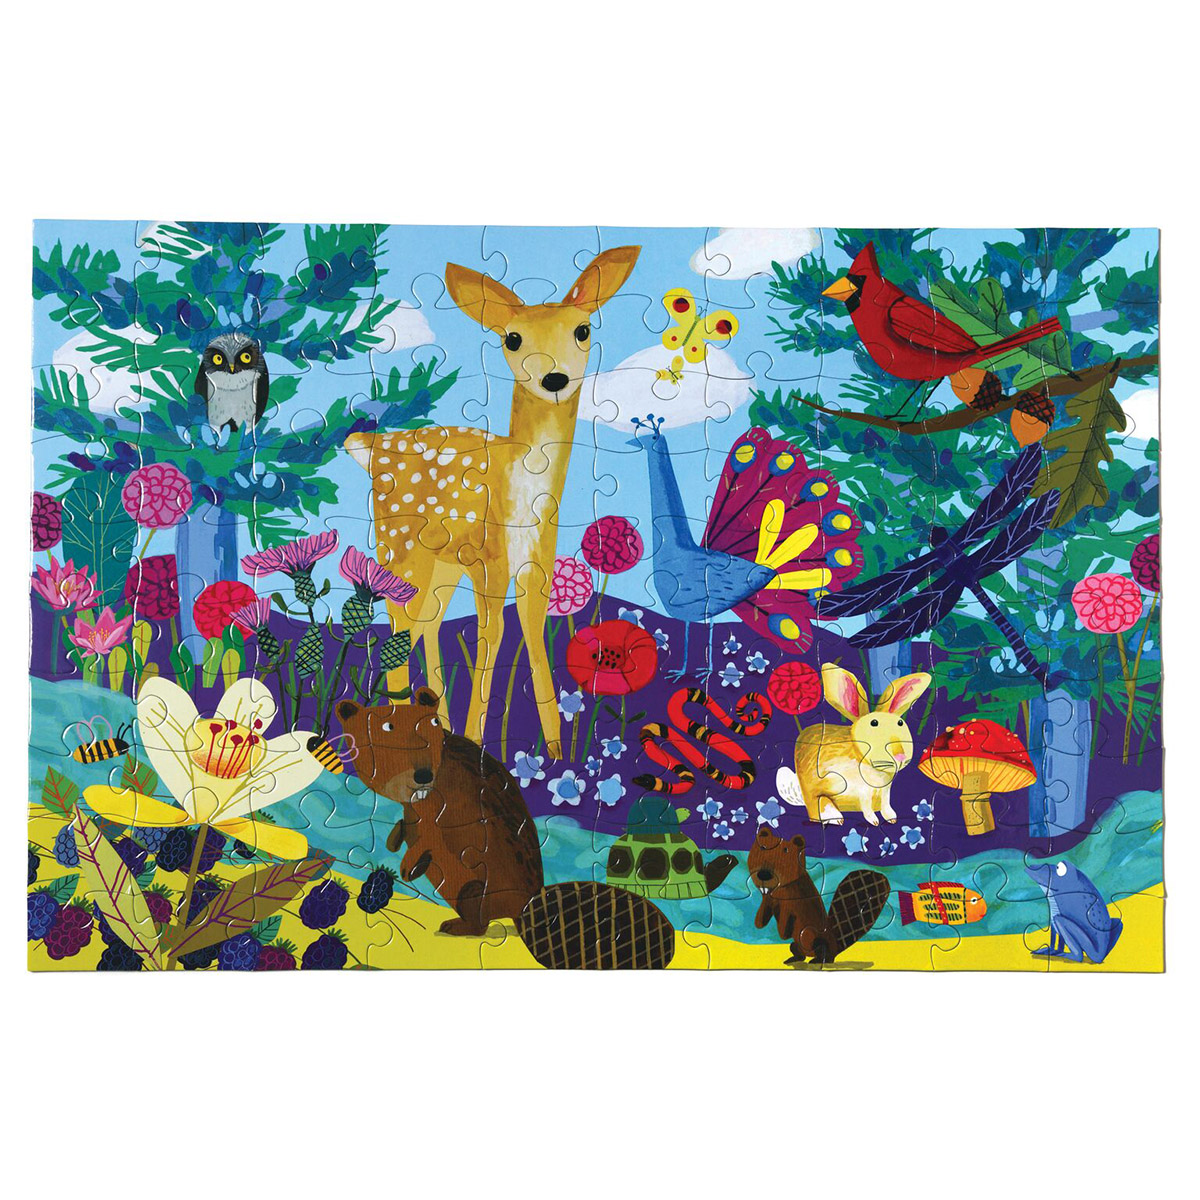 Life on Earth Animals Jigsaw Puzzle